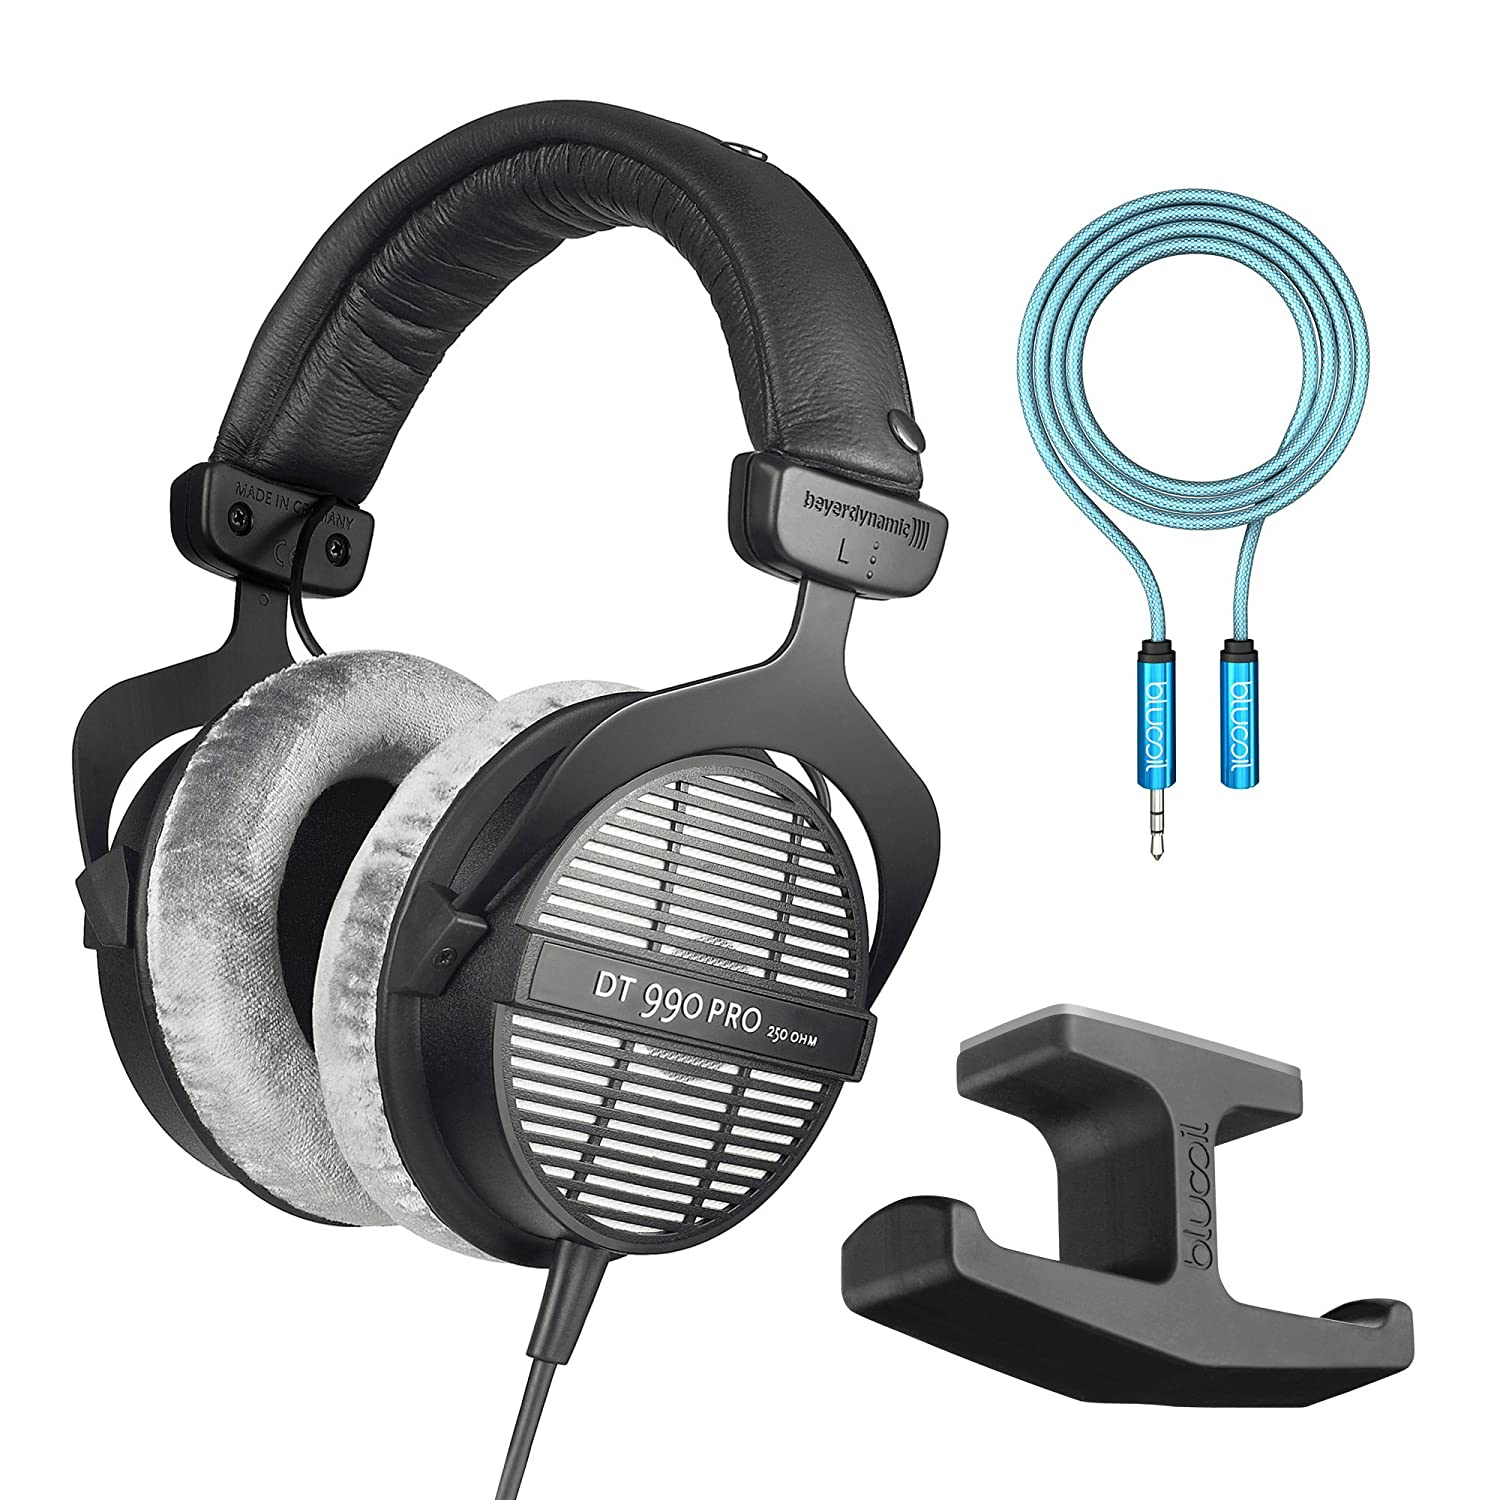 Beyerdynamic DT 990 PRO 250 Ohm Open Studio Headphones -INCLUDES- Blucoil Audio 6-Ft Extension Cable AND Stick-On Under Desk Dual Headphone Stand Mount 4334428055